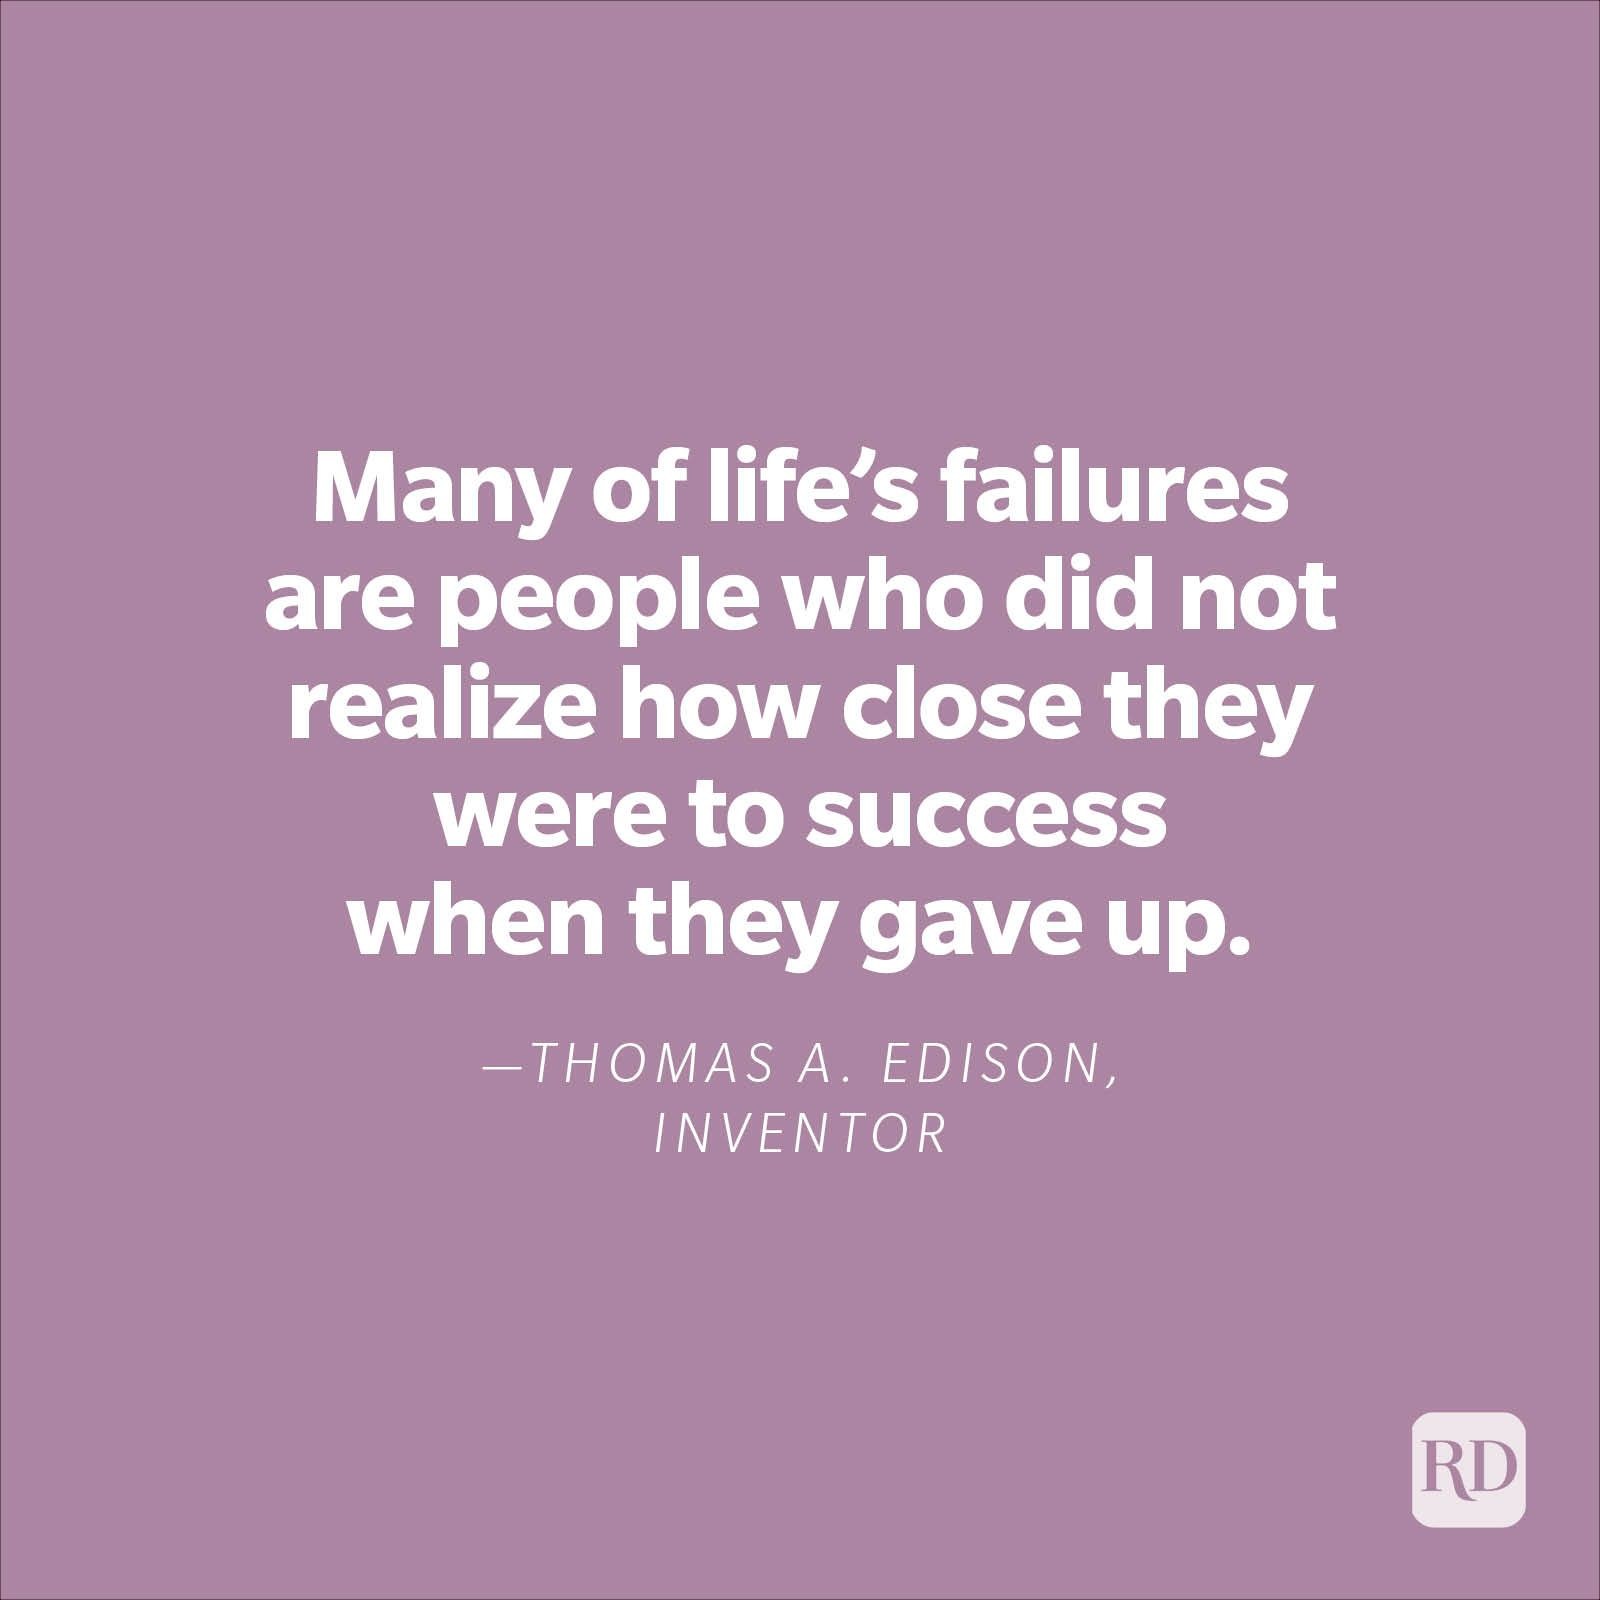 """""""Many of life's failures are people who did not realize how close they were to success when they gave up."""" —Thomas A. Edison, inventor"""